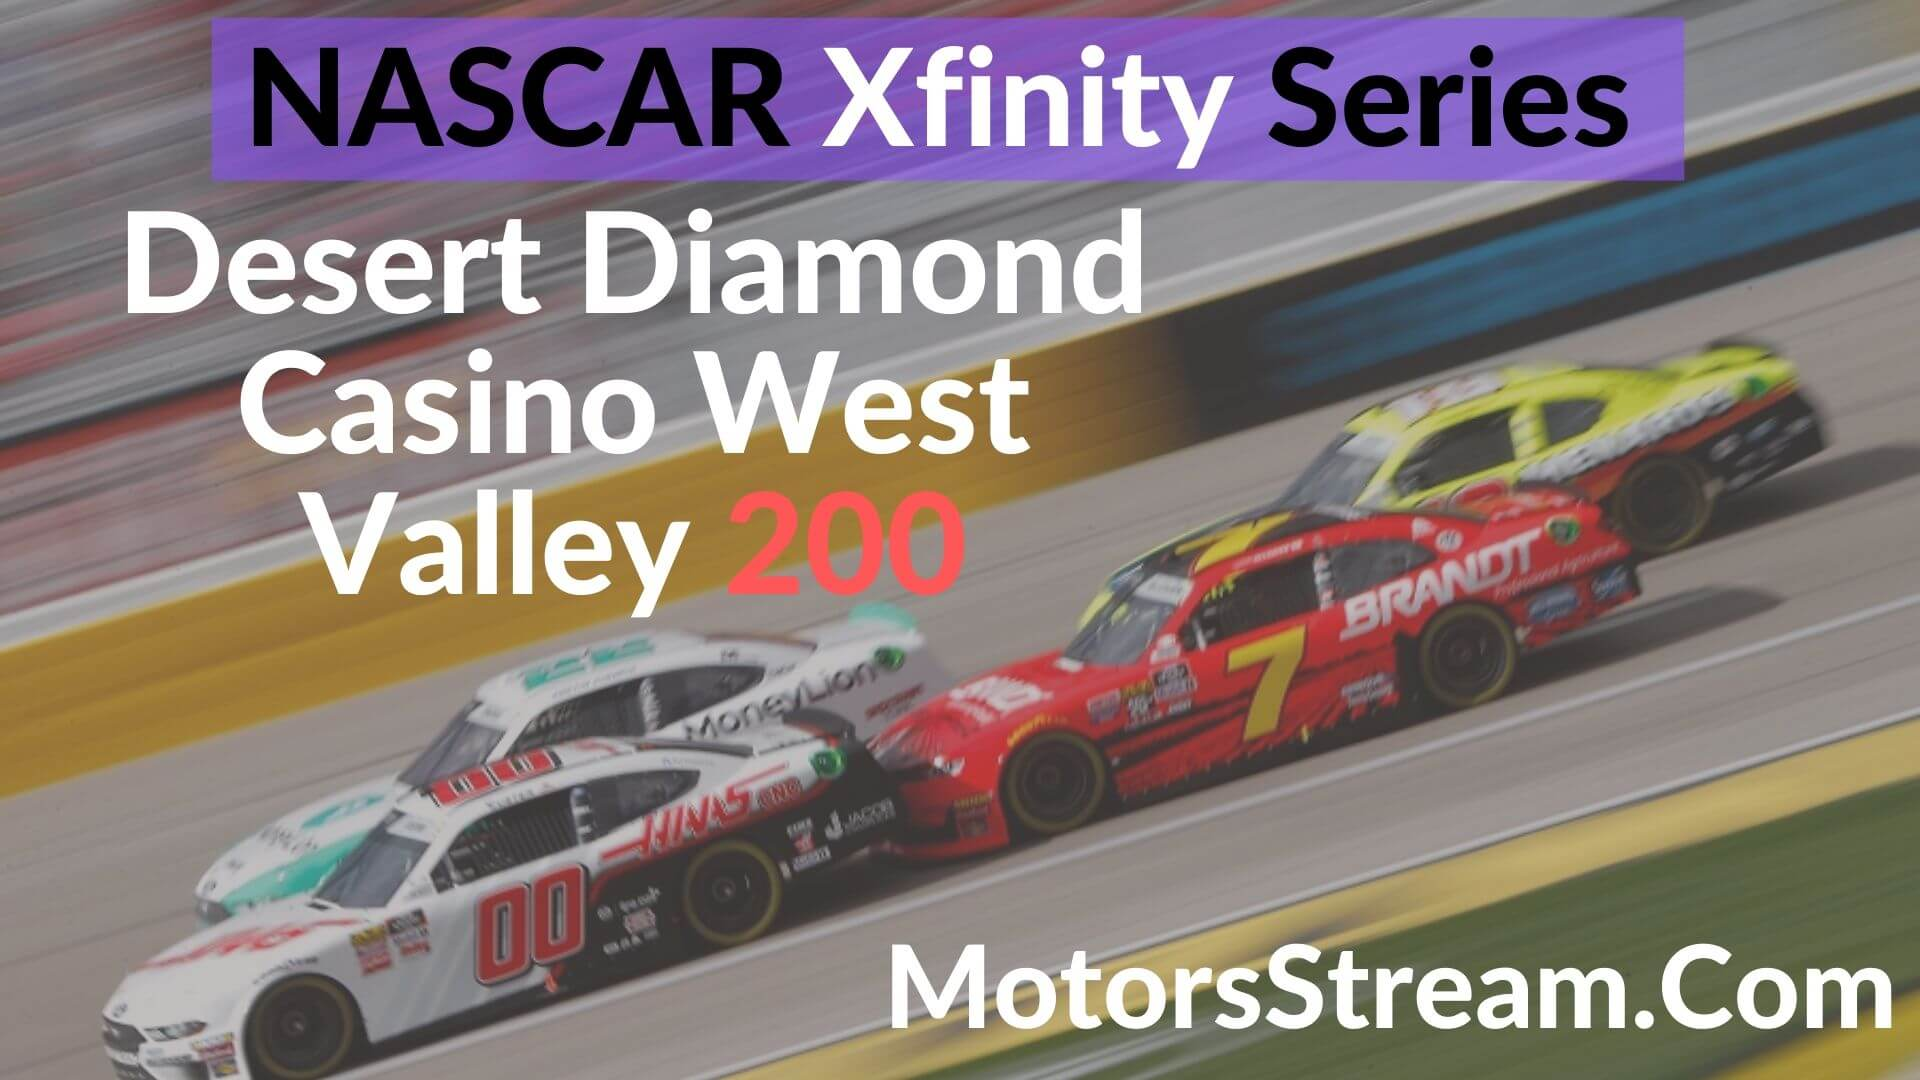 Desert Diamond Casino West Valley 200 Live Stream | Xfinity Series 2020